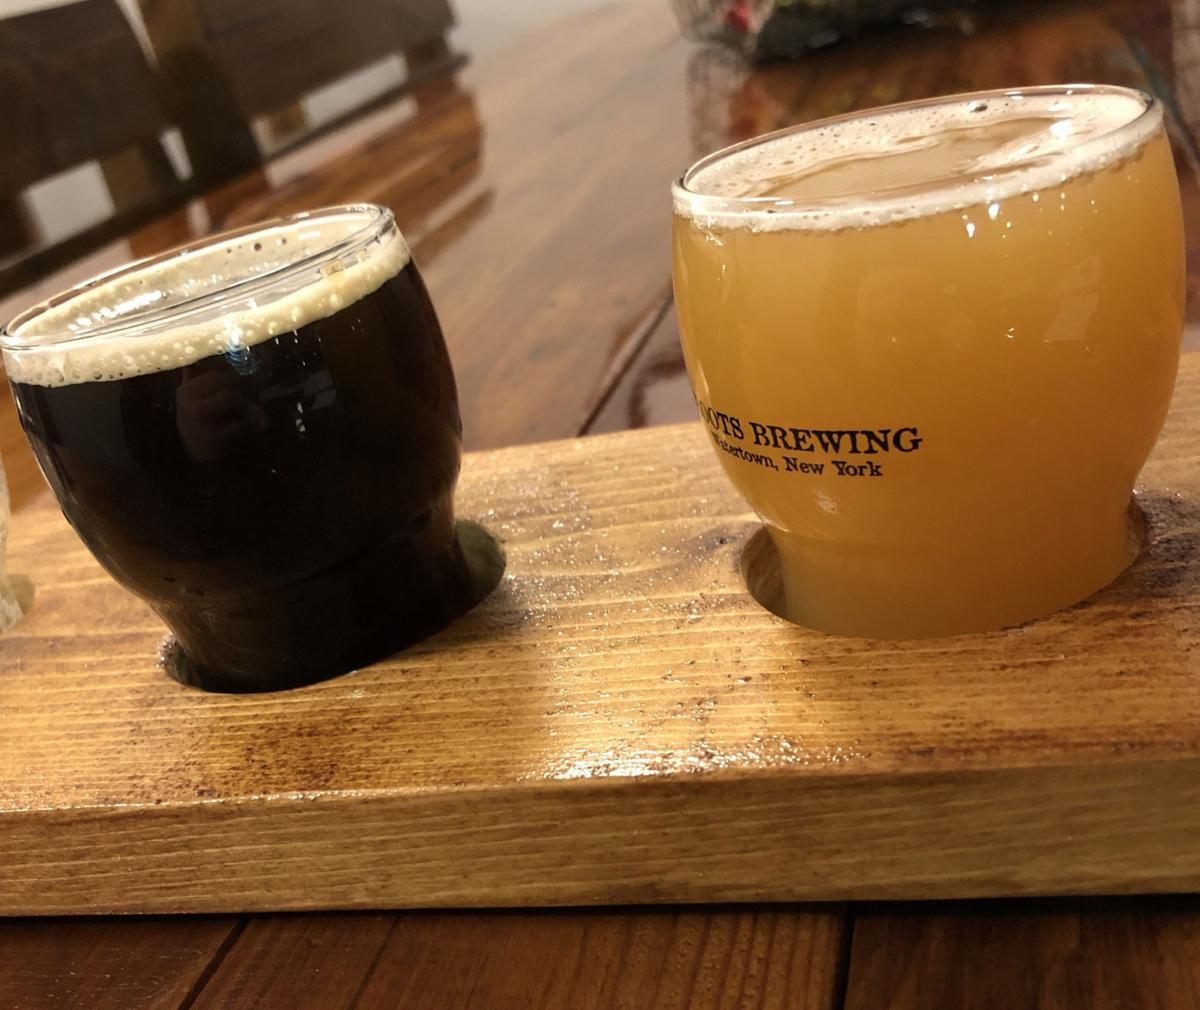 Burly stouts and IPAs offer a kick